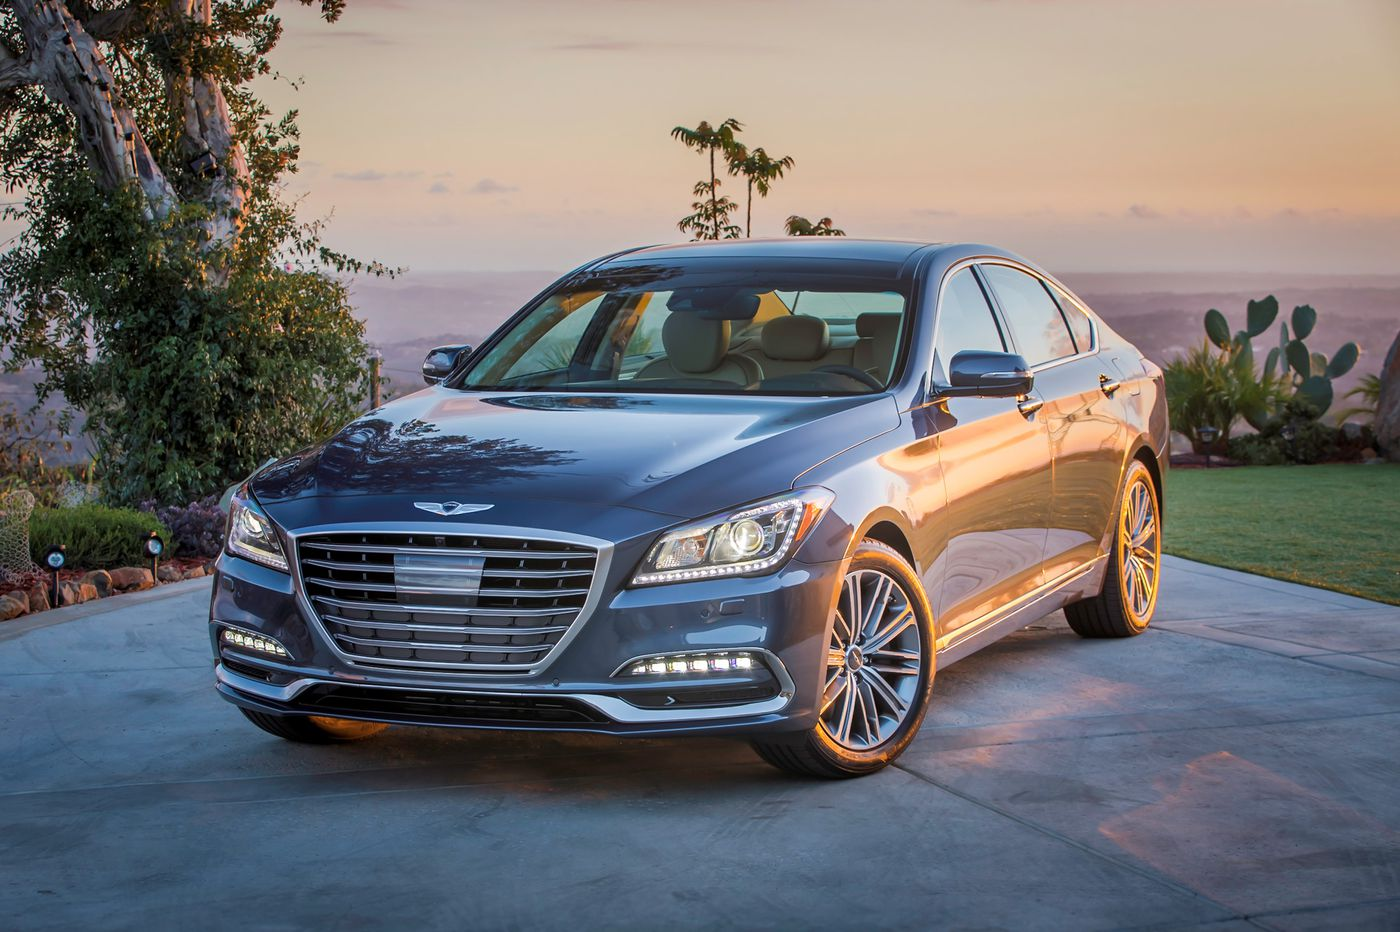 Genesis G80 stays on the same luxurious path it forged